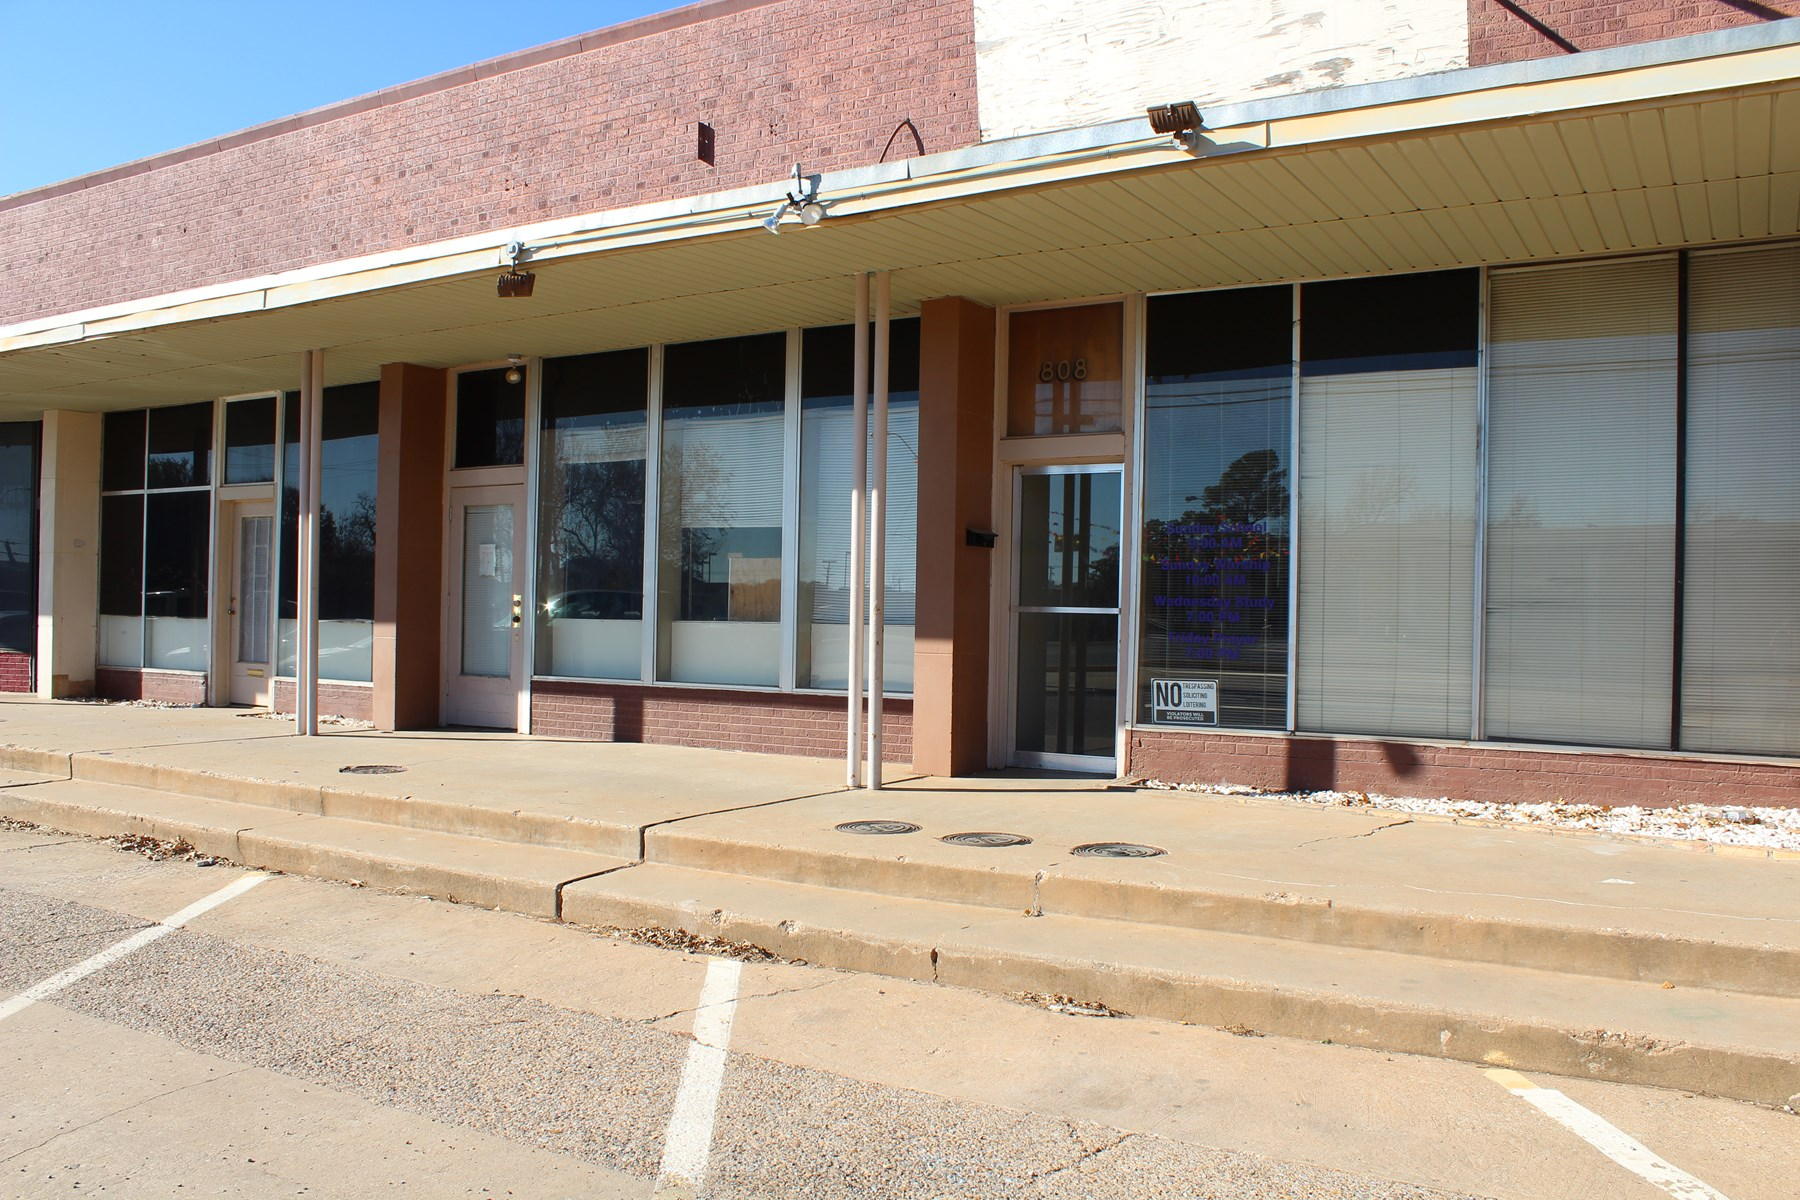 Commercial Property For Lease Wichita Falls Income Property